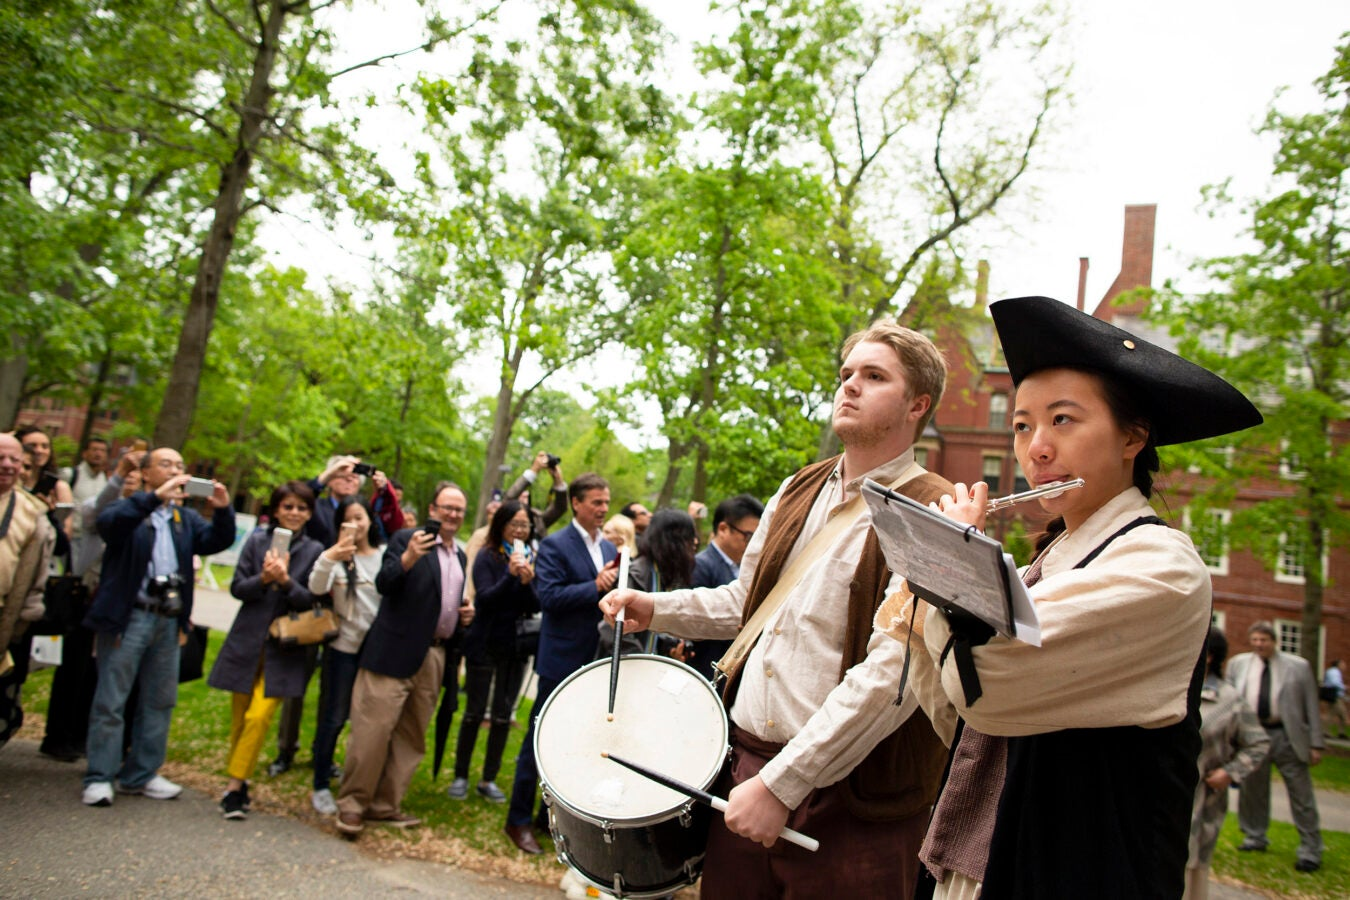 Ian Saum and Allison Law play drum and piccolo during procession.